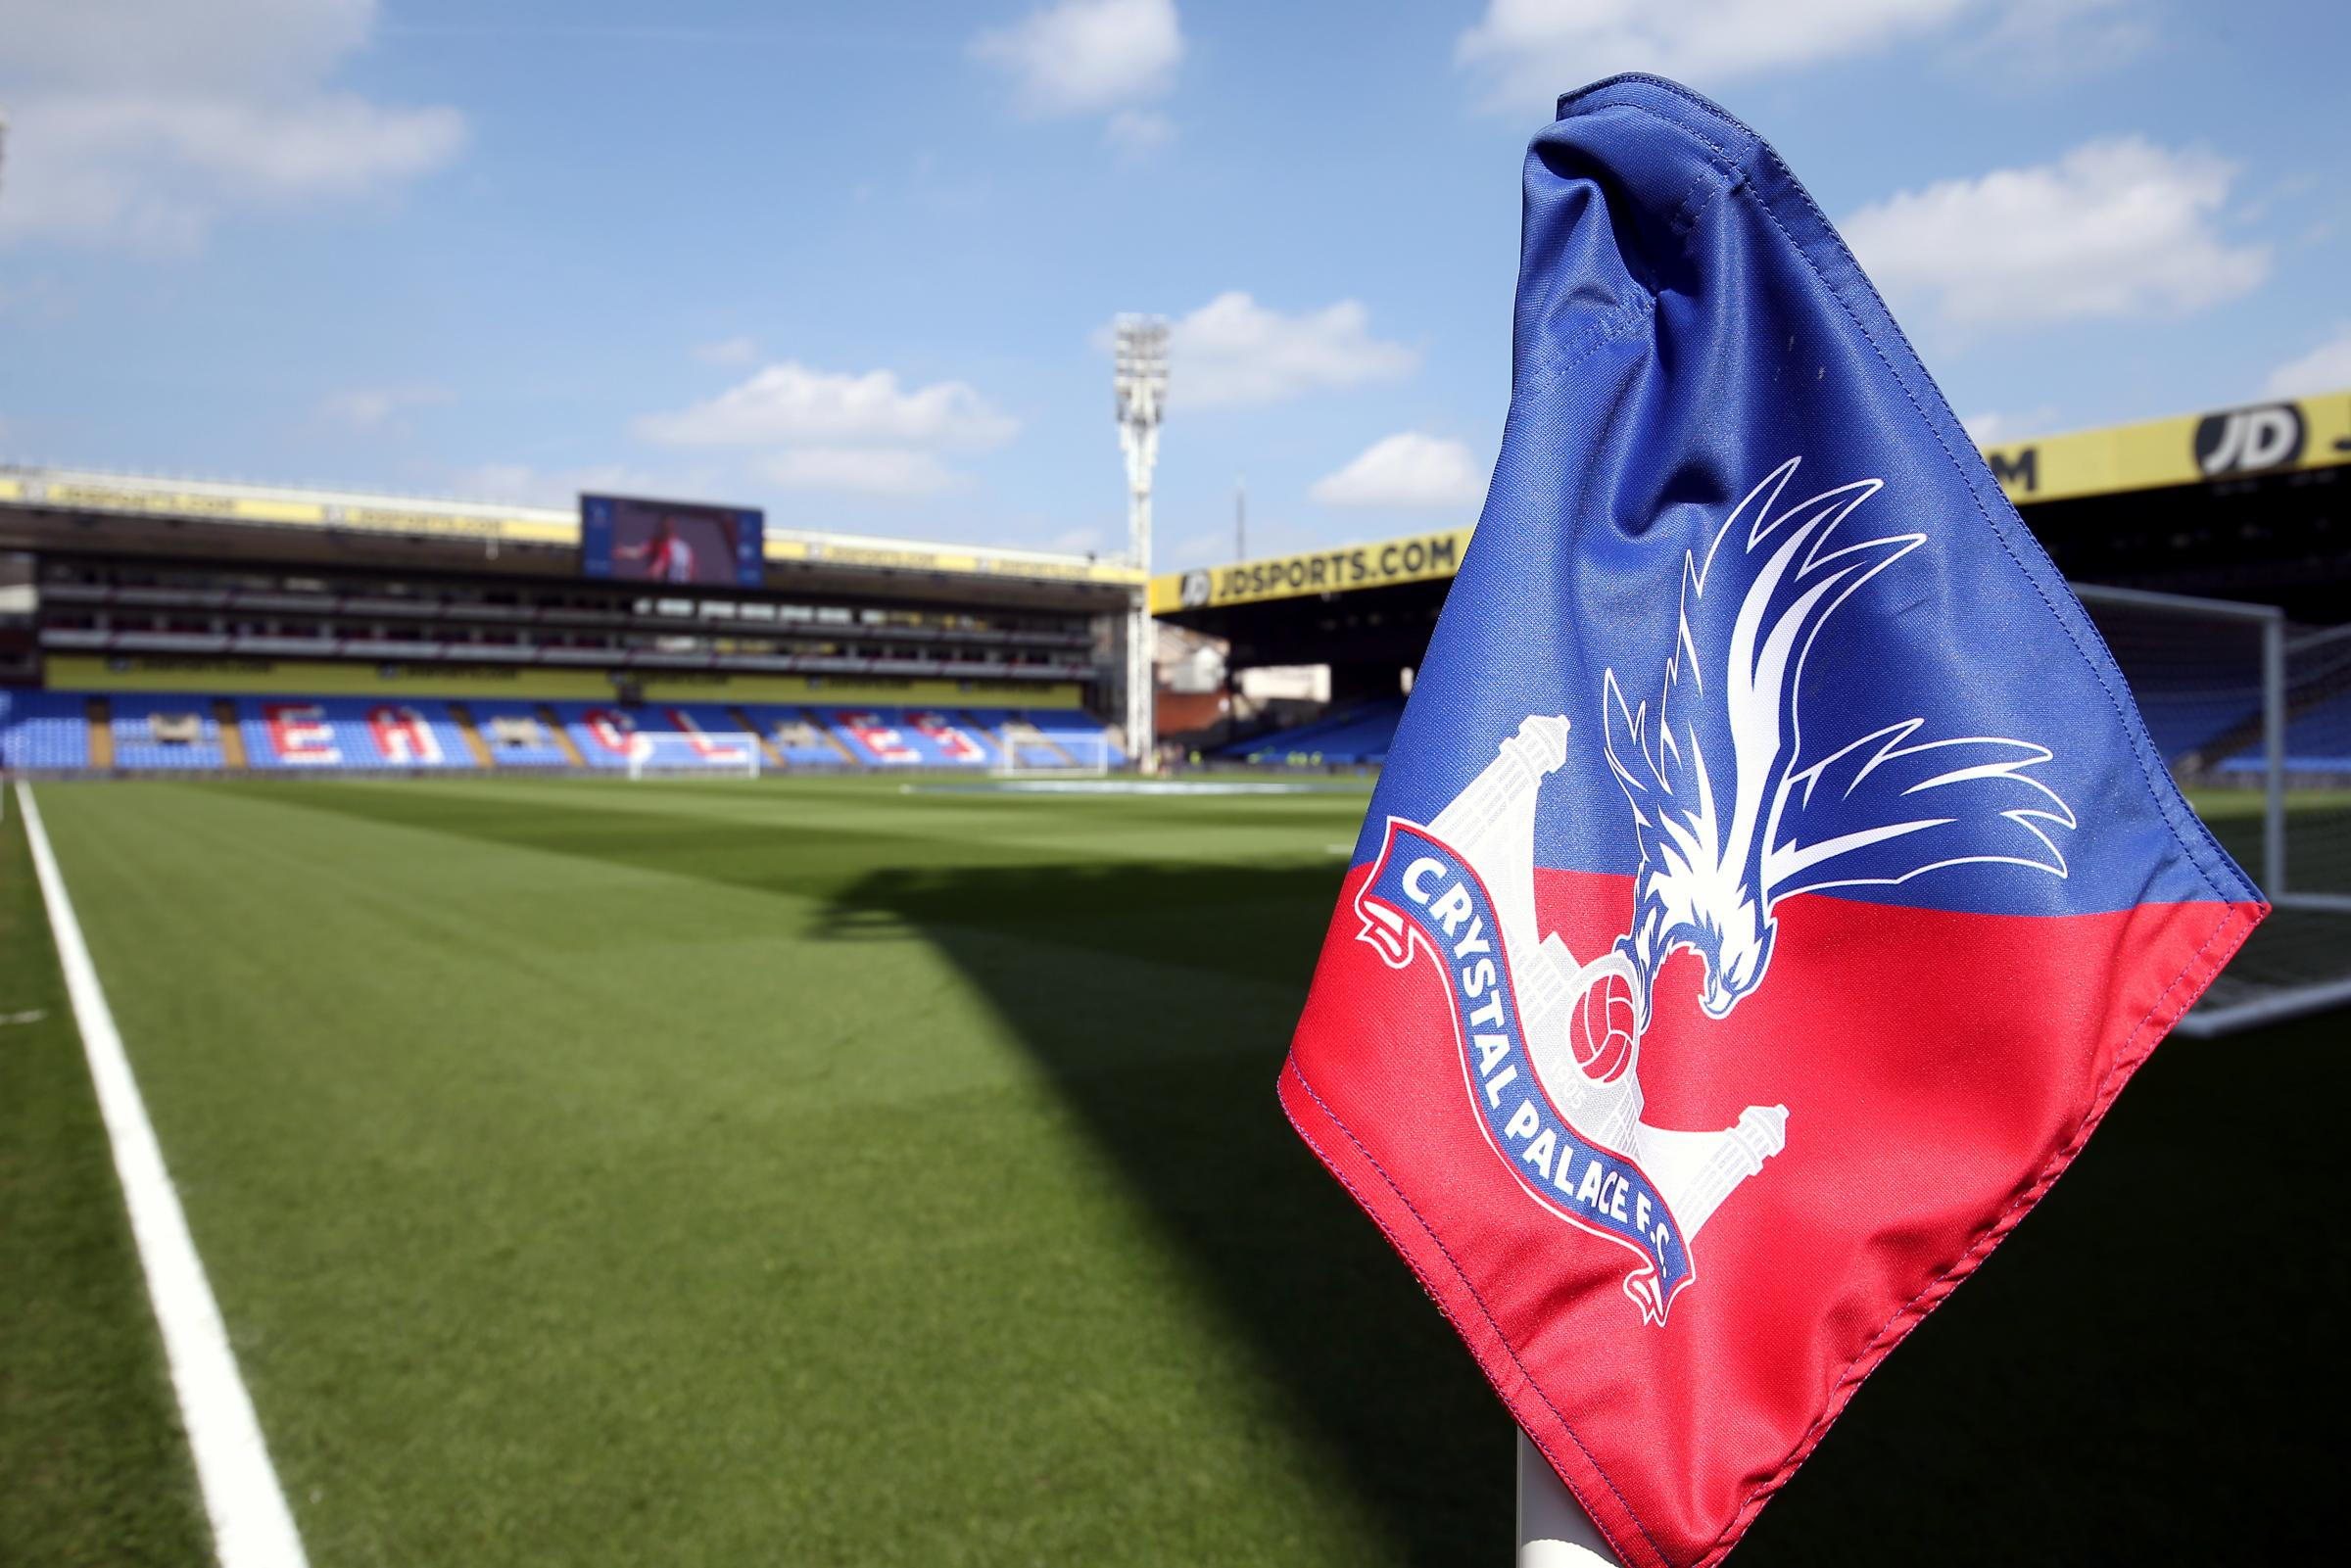 Palace condemn 'disgraceful' racist incident involving 'three-year-old' before Bournemouth win